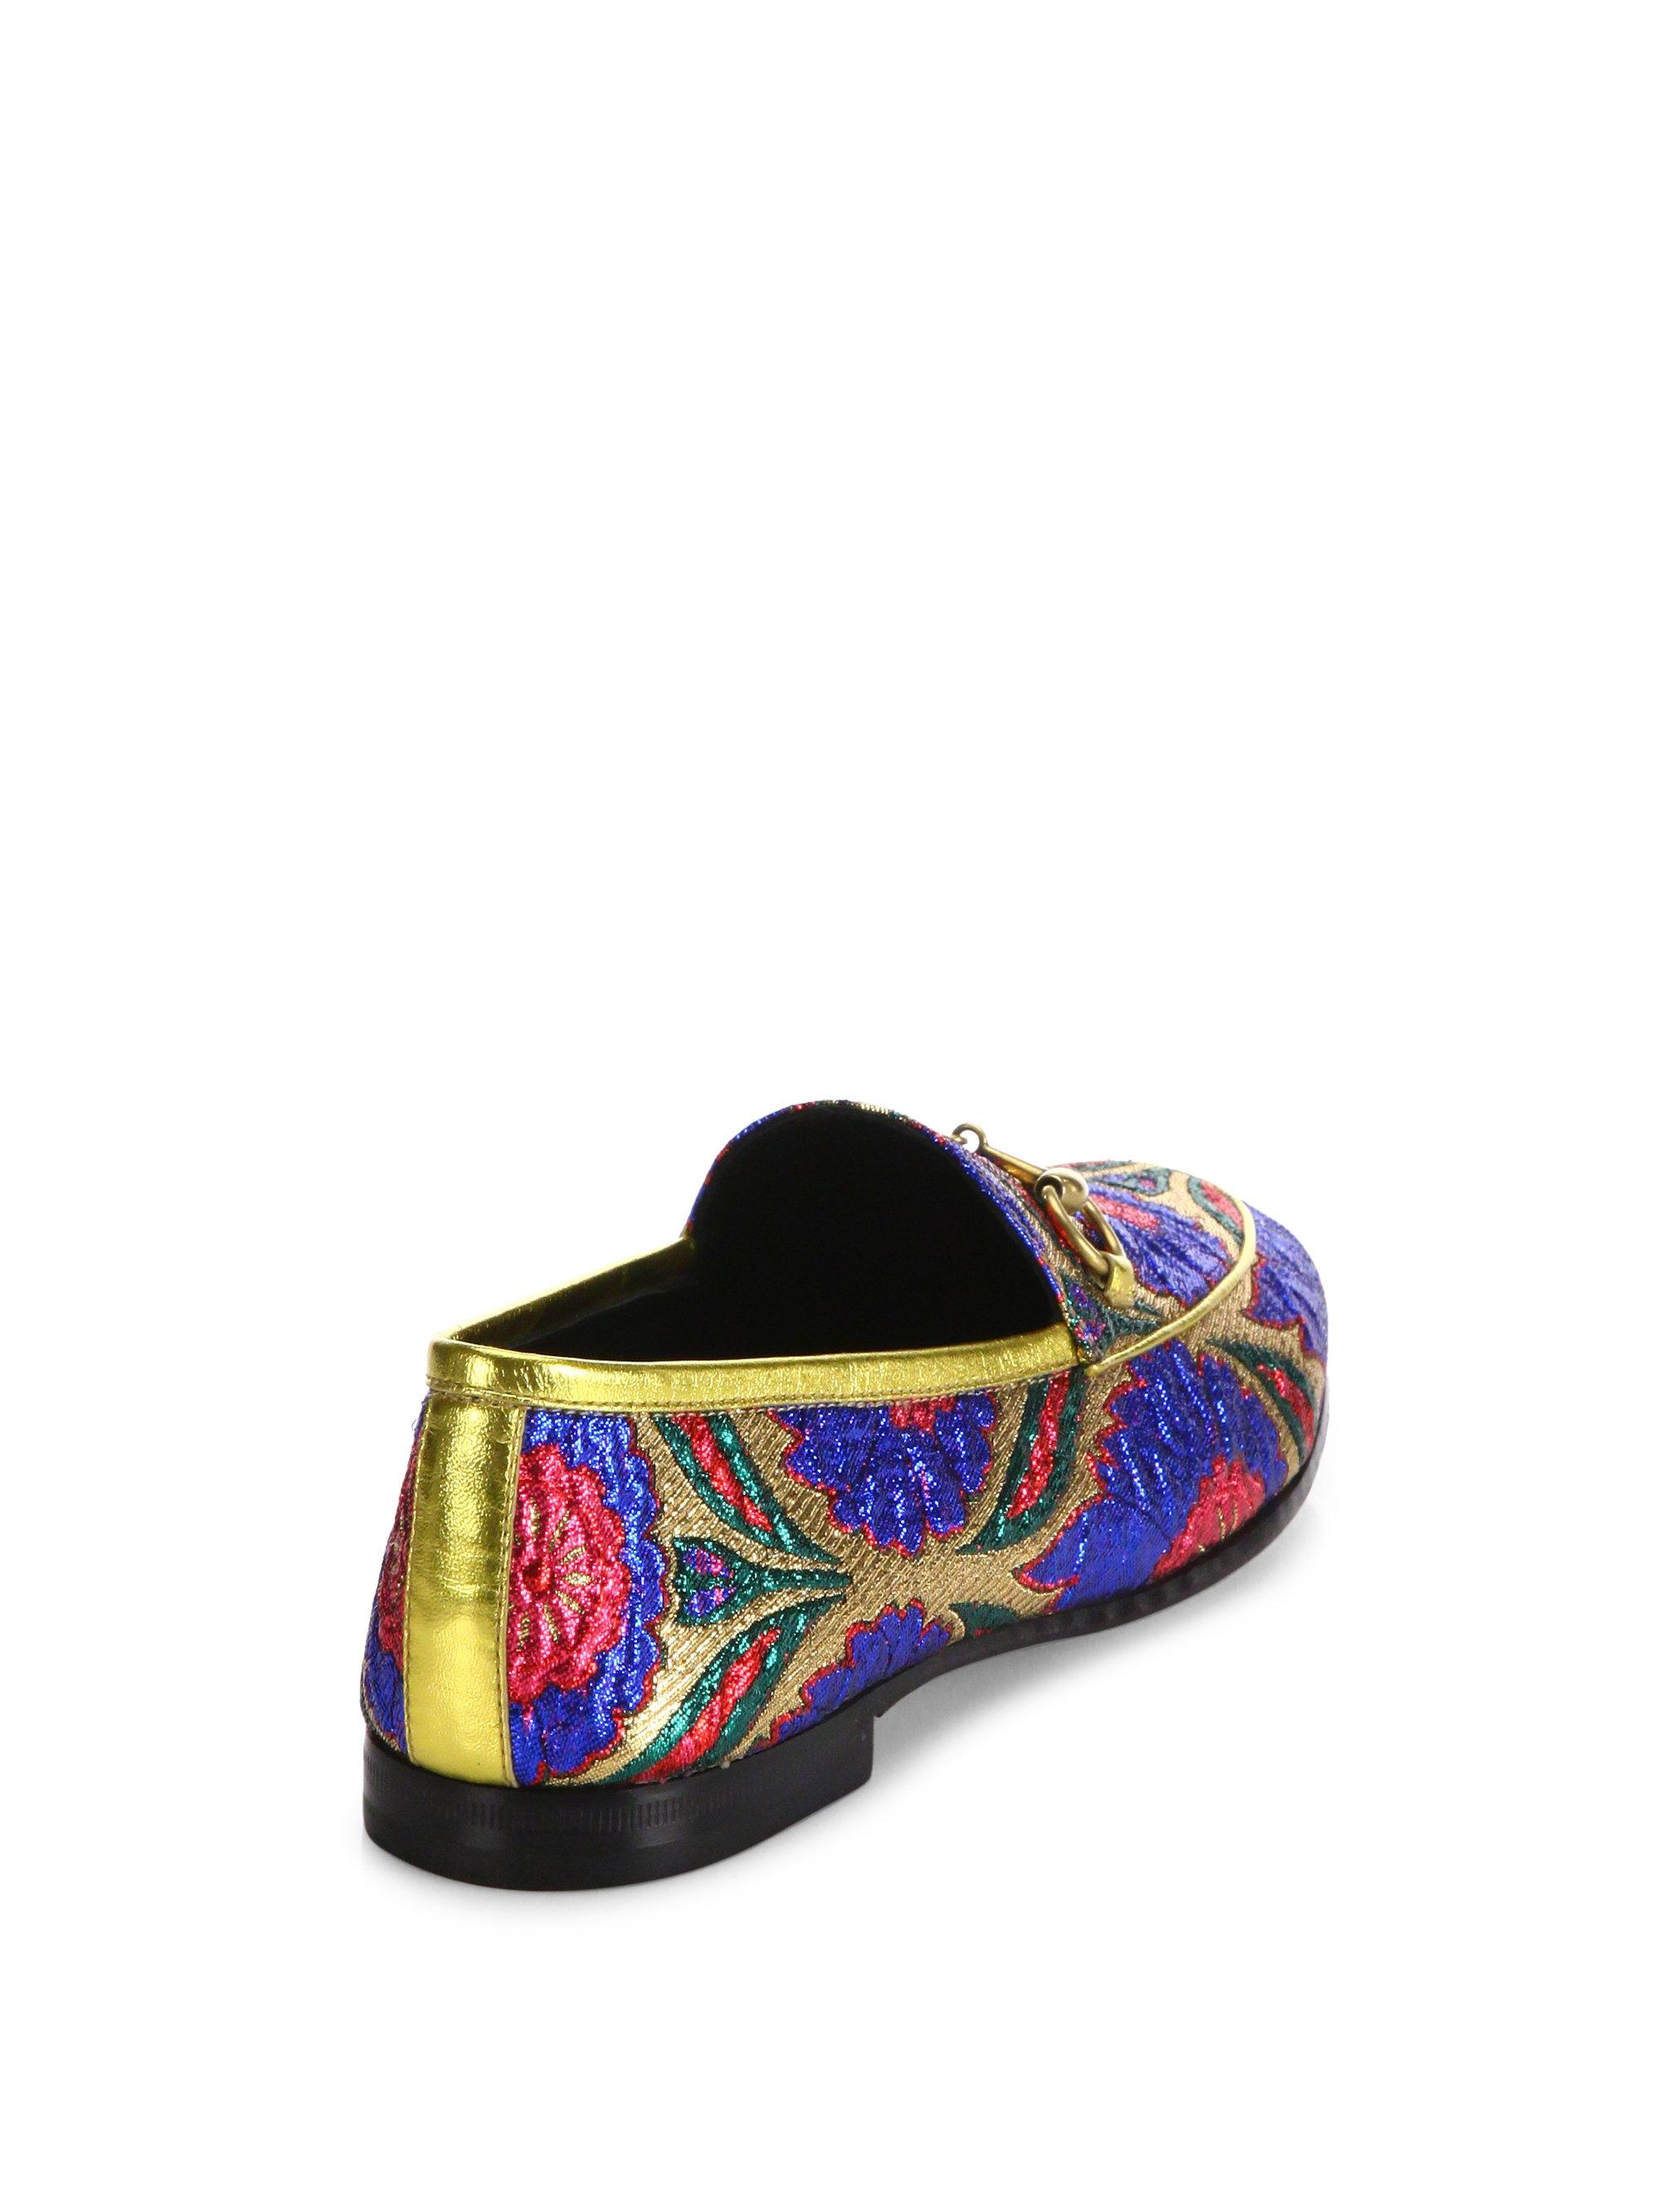 Gucci - Blue Jordaan Lurex Floral Brocade Loafers - Lyst. View Fullscreen